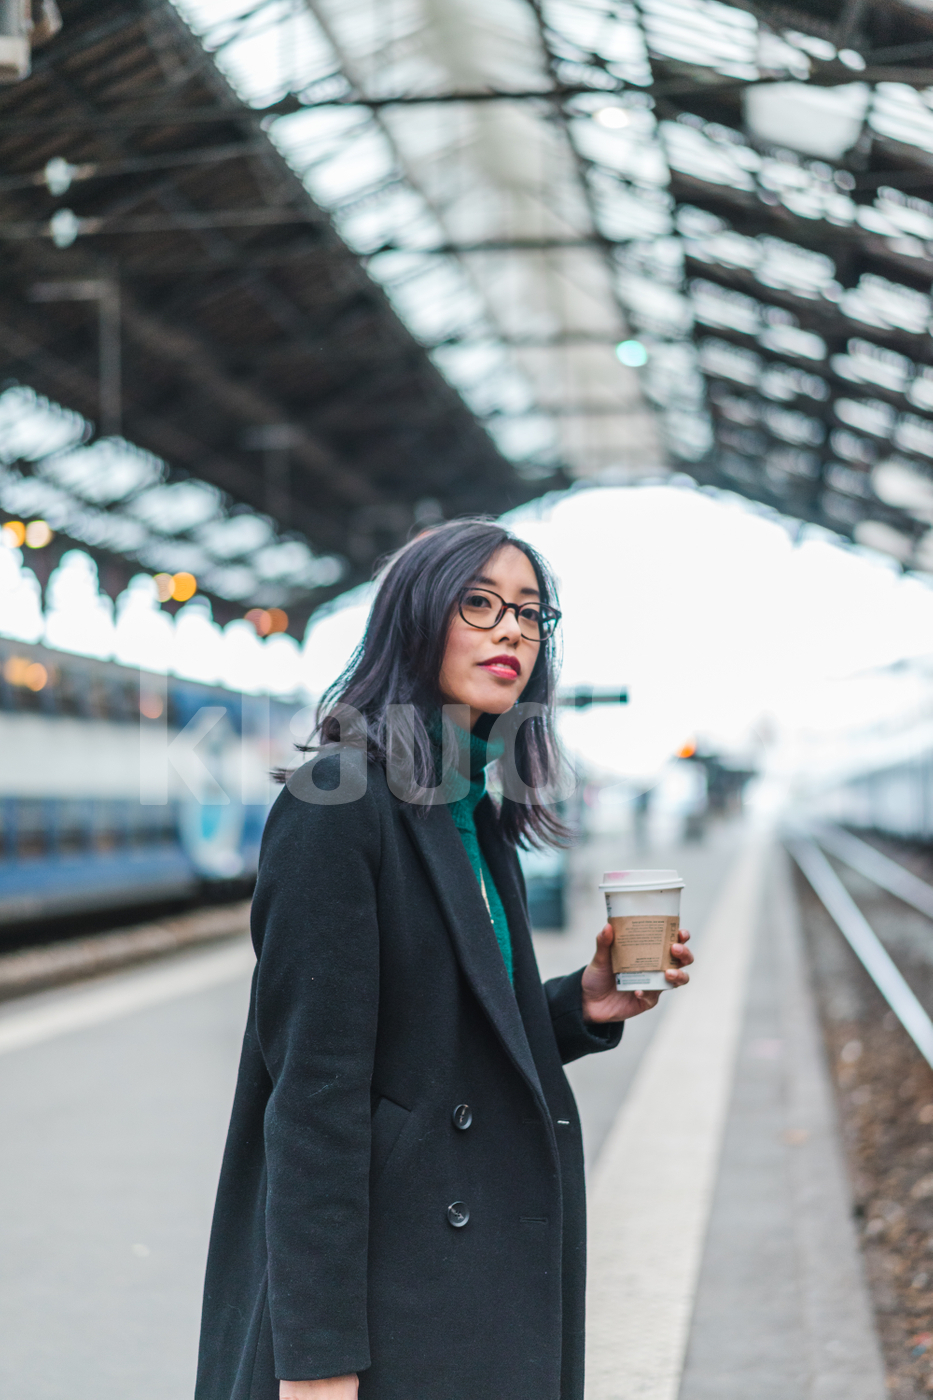 Asian woman waiting for a train holding a drink